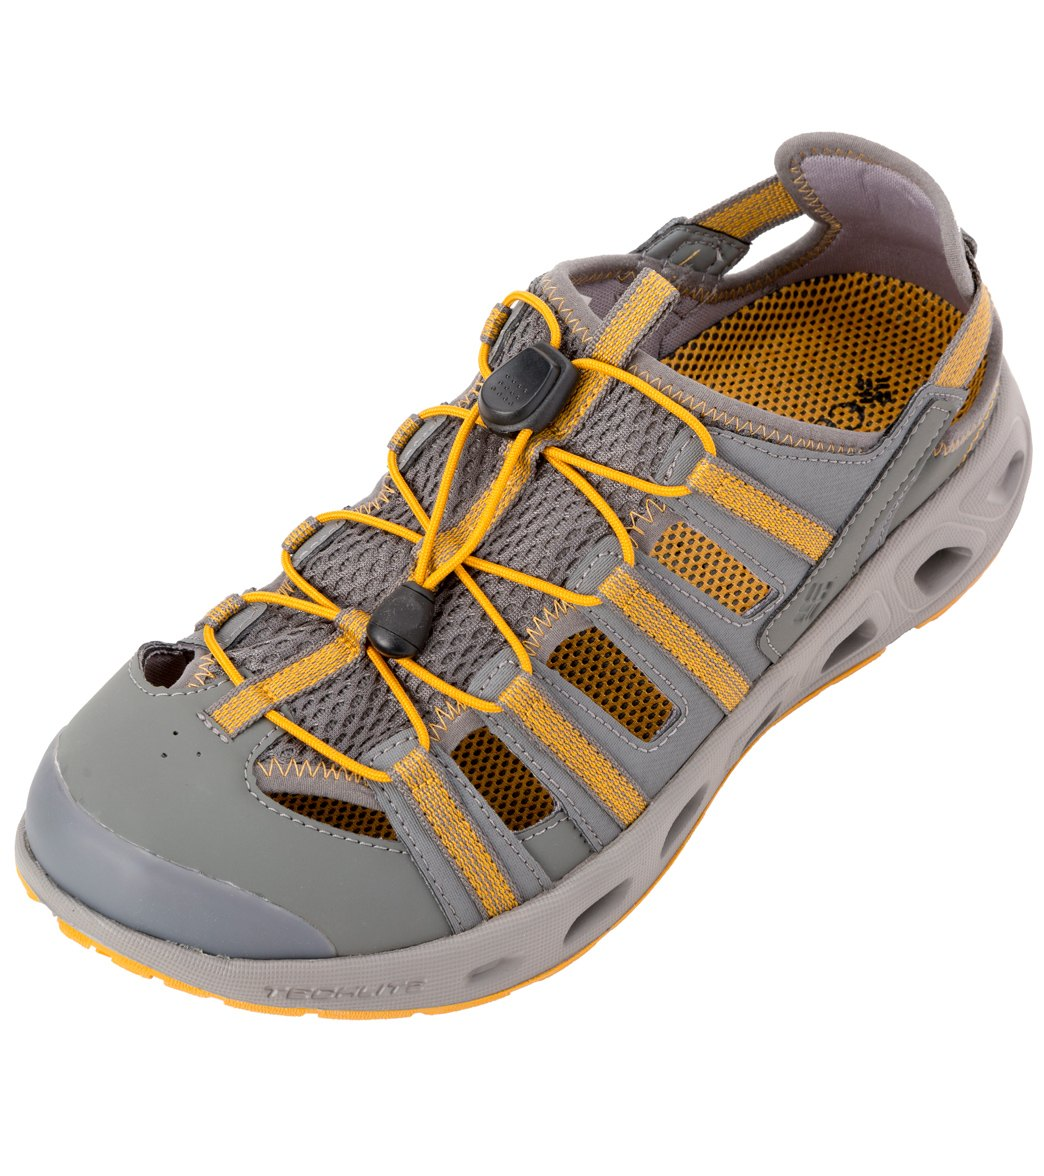 Columbia Men's Supervent II Water Shoes at SwimOutlet.com - Free ...